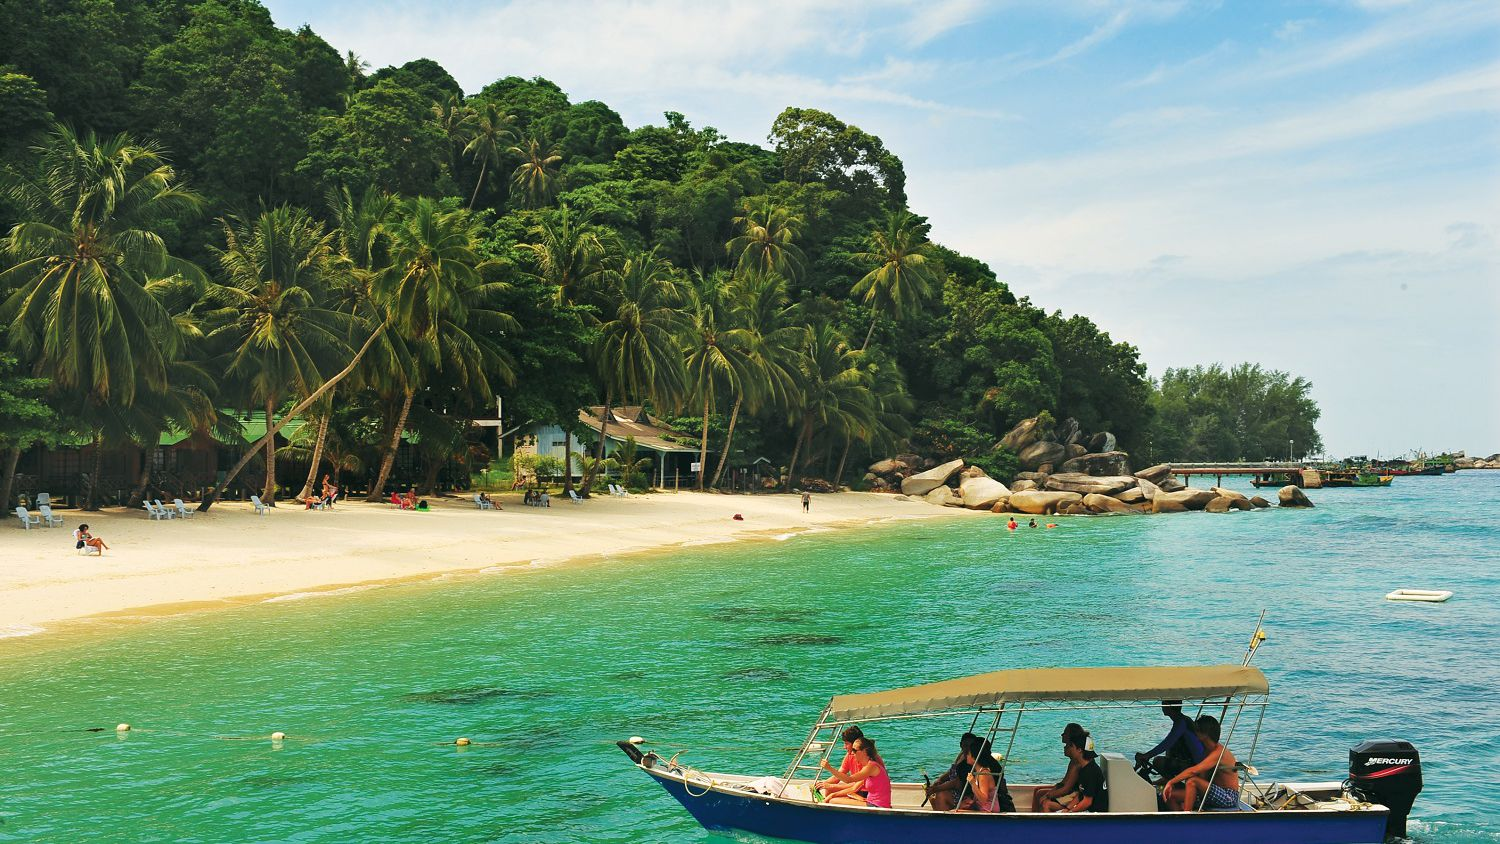 A Travel Guide To The Perhentian Islands Of Malaysia